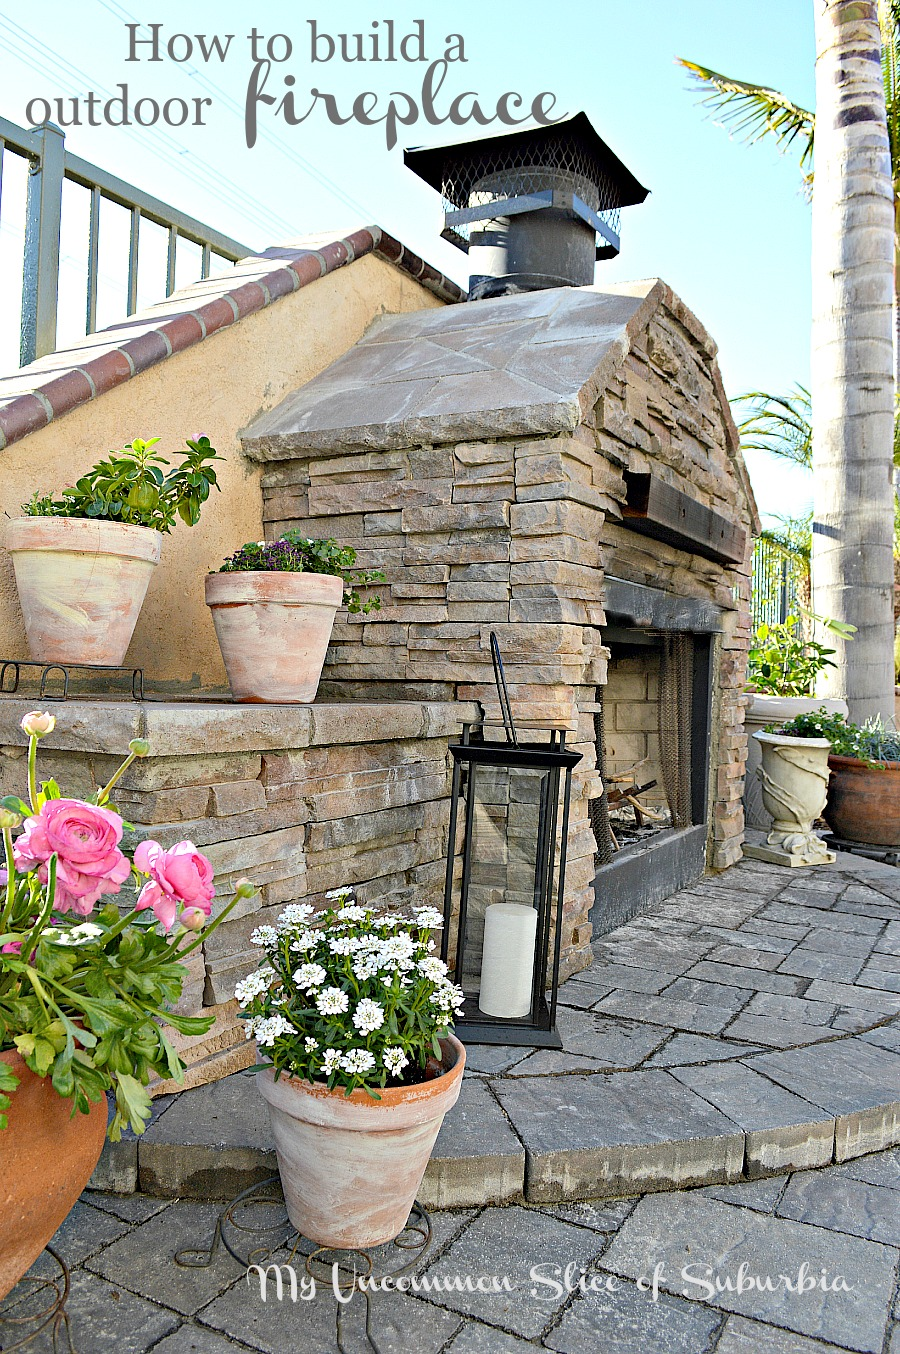 how to build an outdoor stacked stone fireplace rh myuncommonsliceofsuburbia com Build Your Own Outdoor Fireplace Outdoor Stacked Stone Fireplace